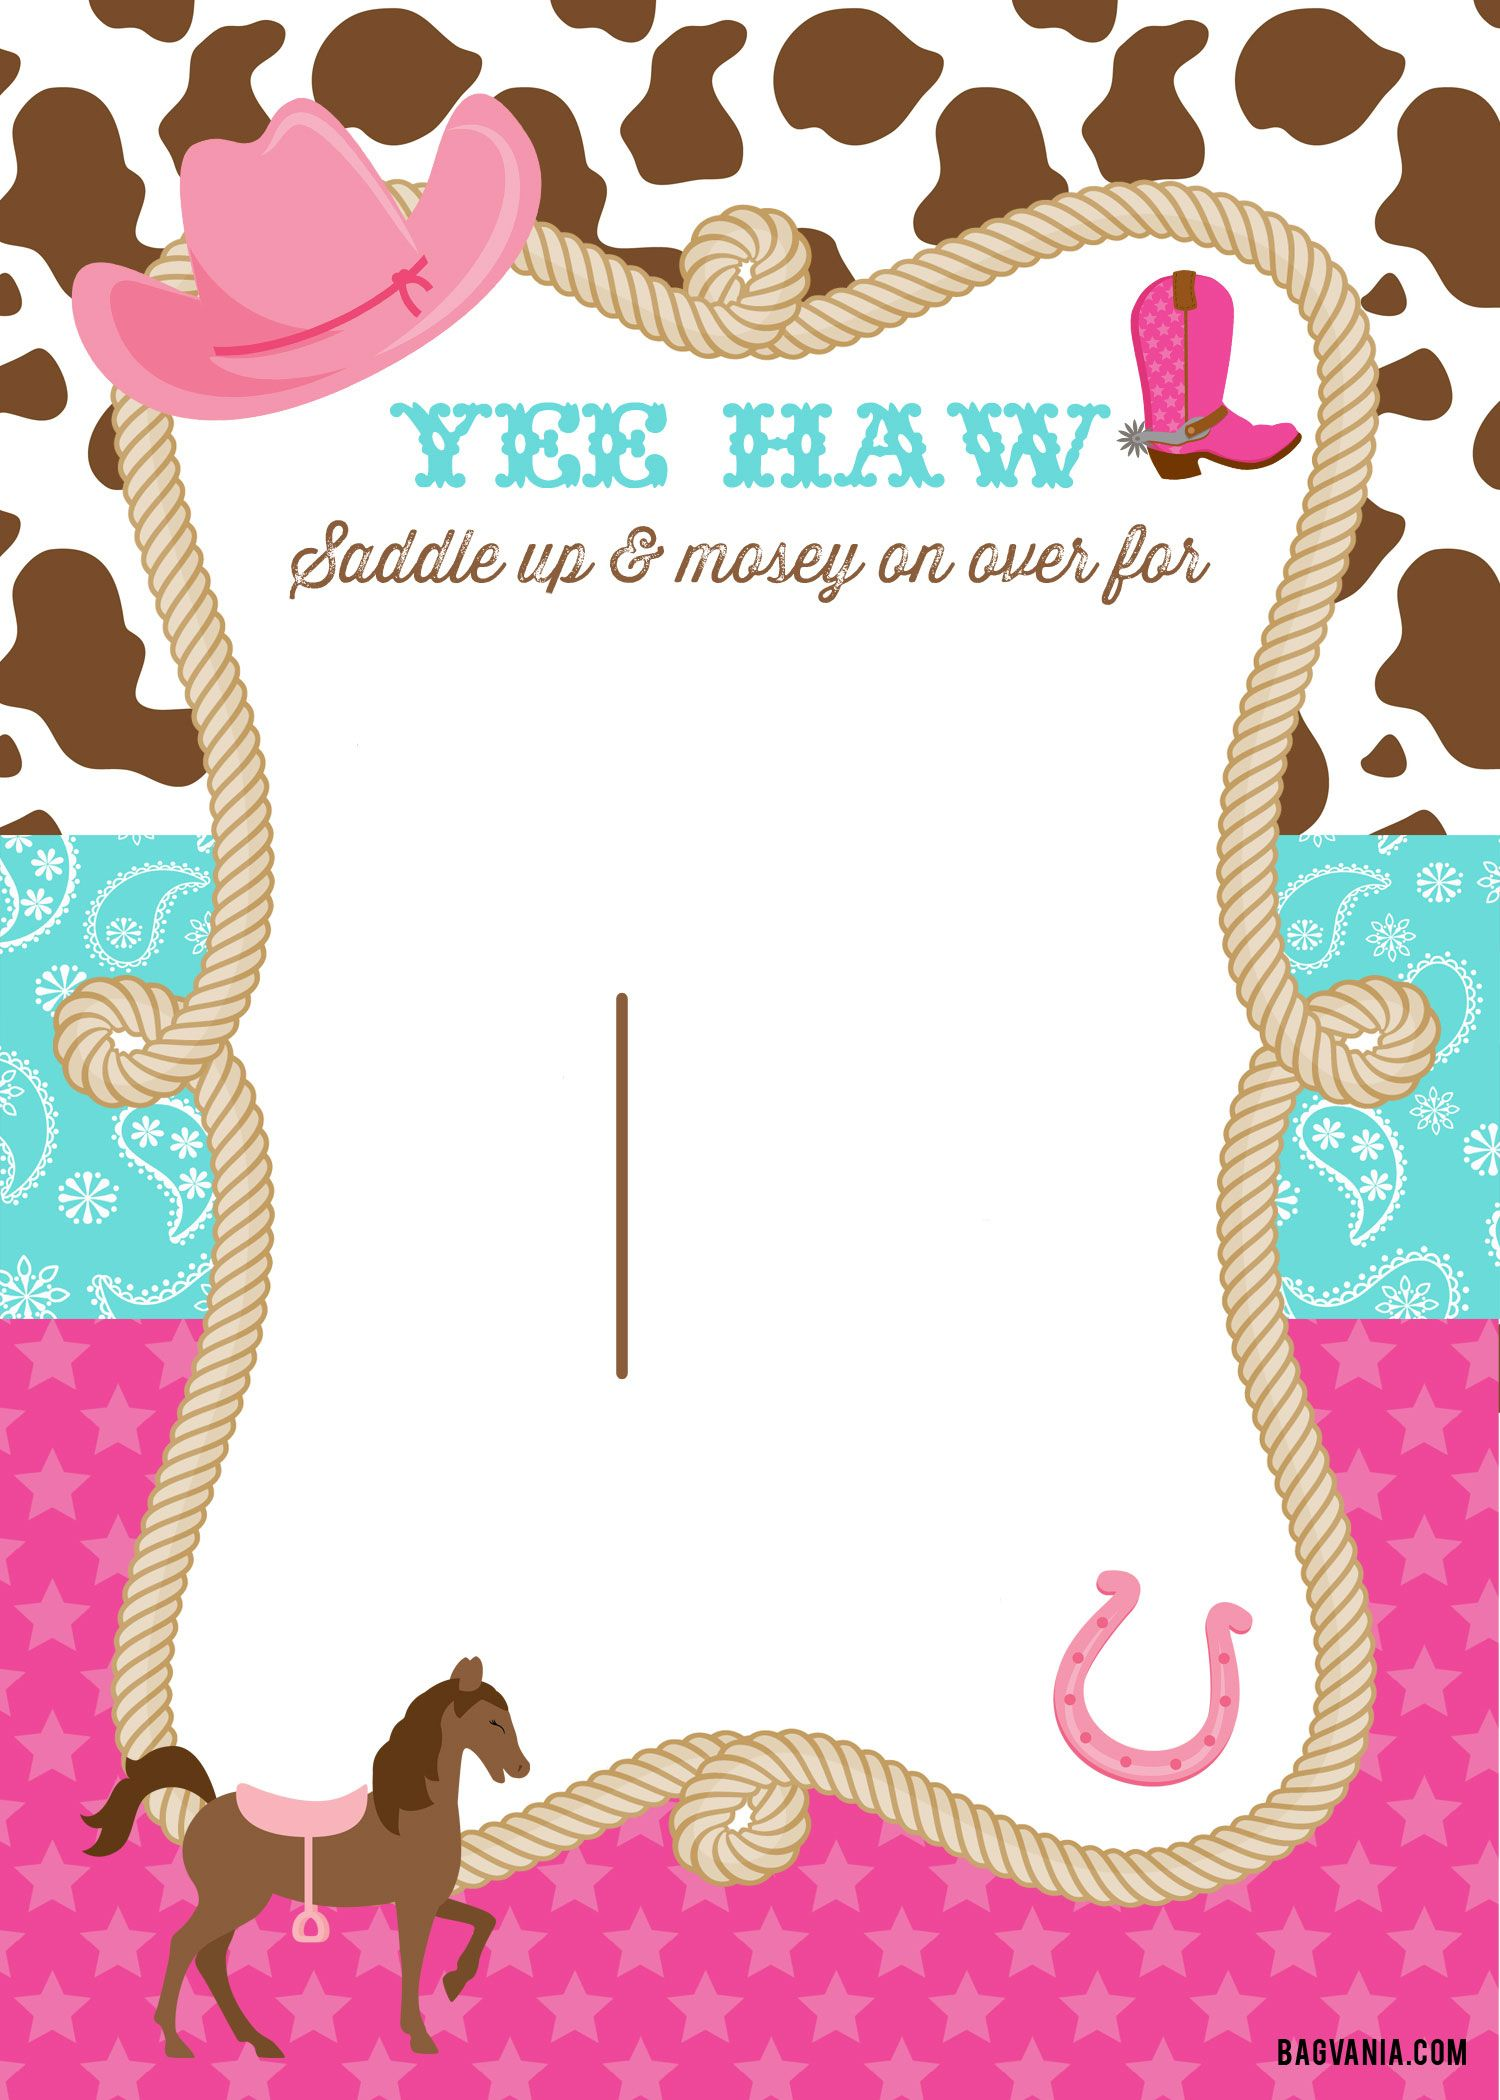 picture about Free Printable Cowgirl Birthday Invitations named Pin by means of D.Pattersaul upon Peaches inside 2019 Cowgirl birthday